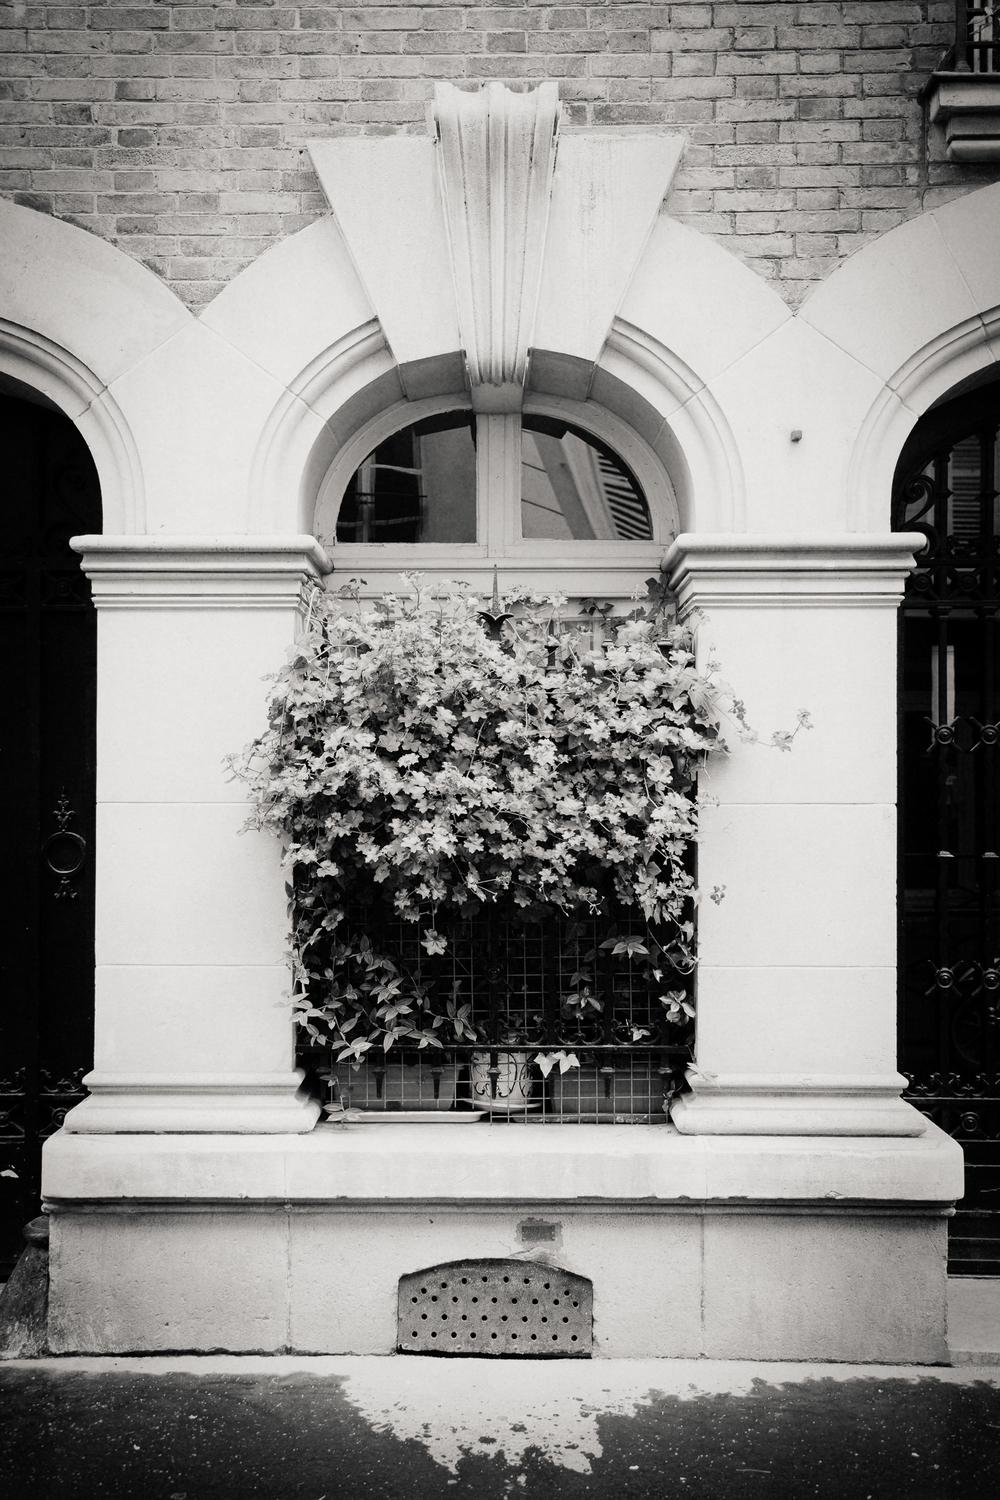 window box, Paris 2014.